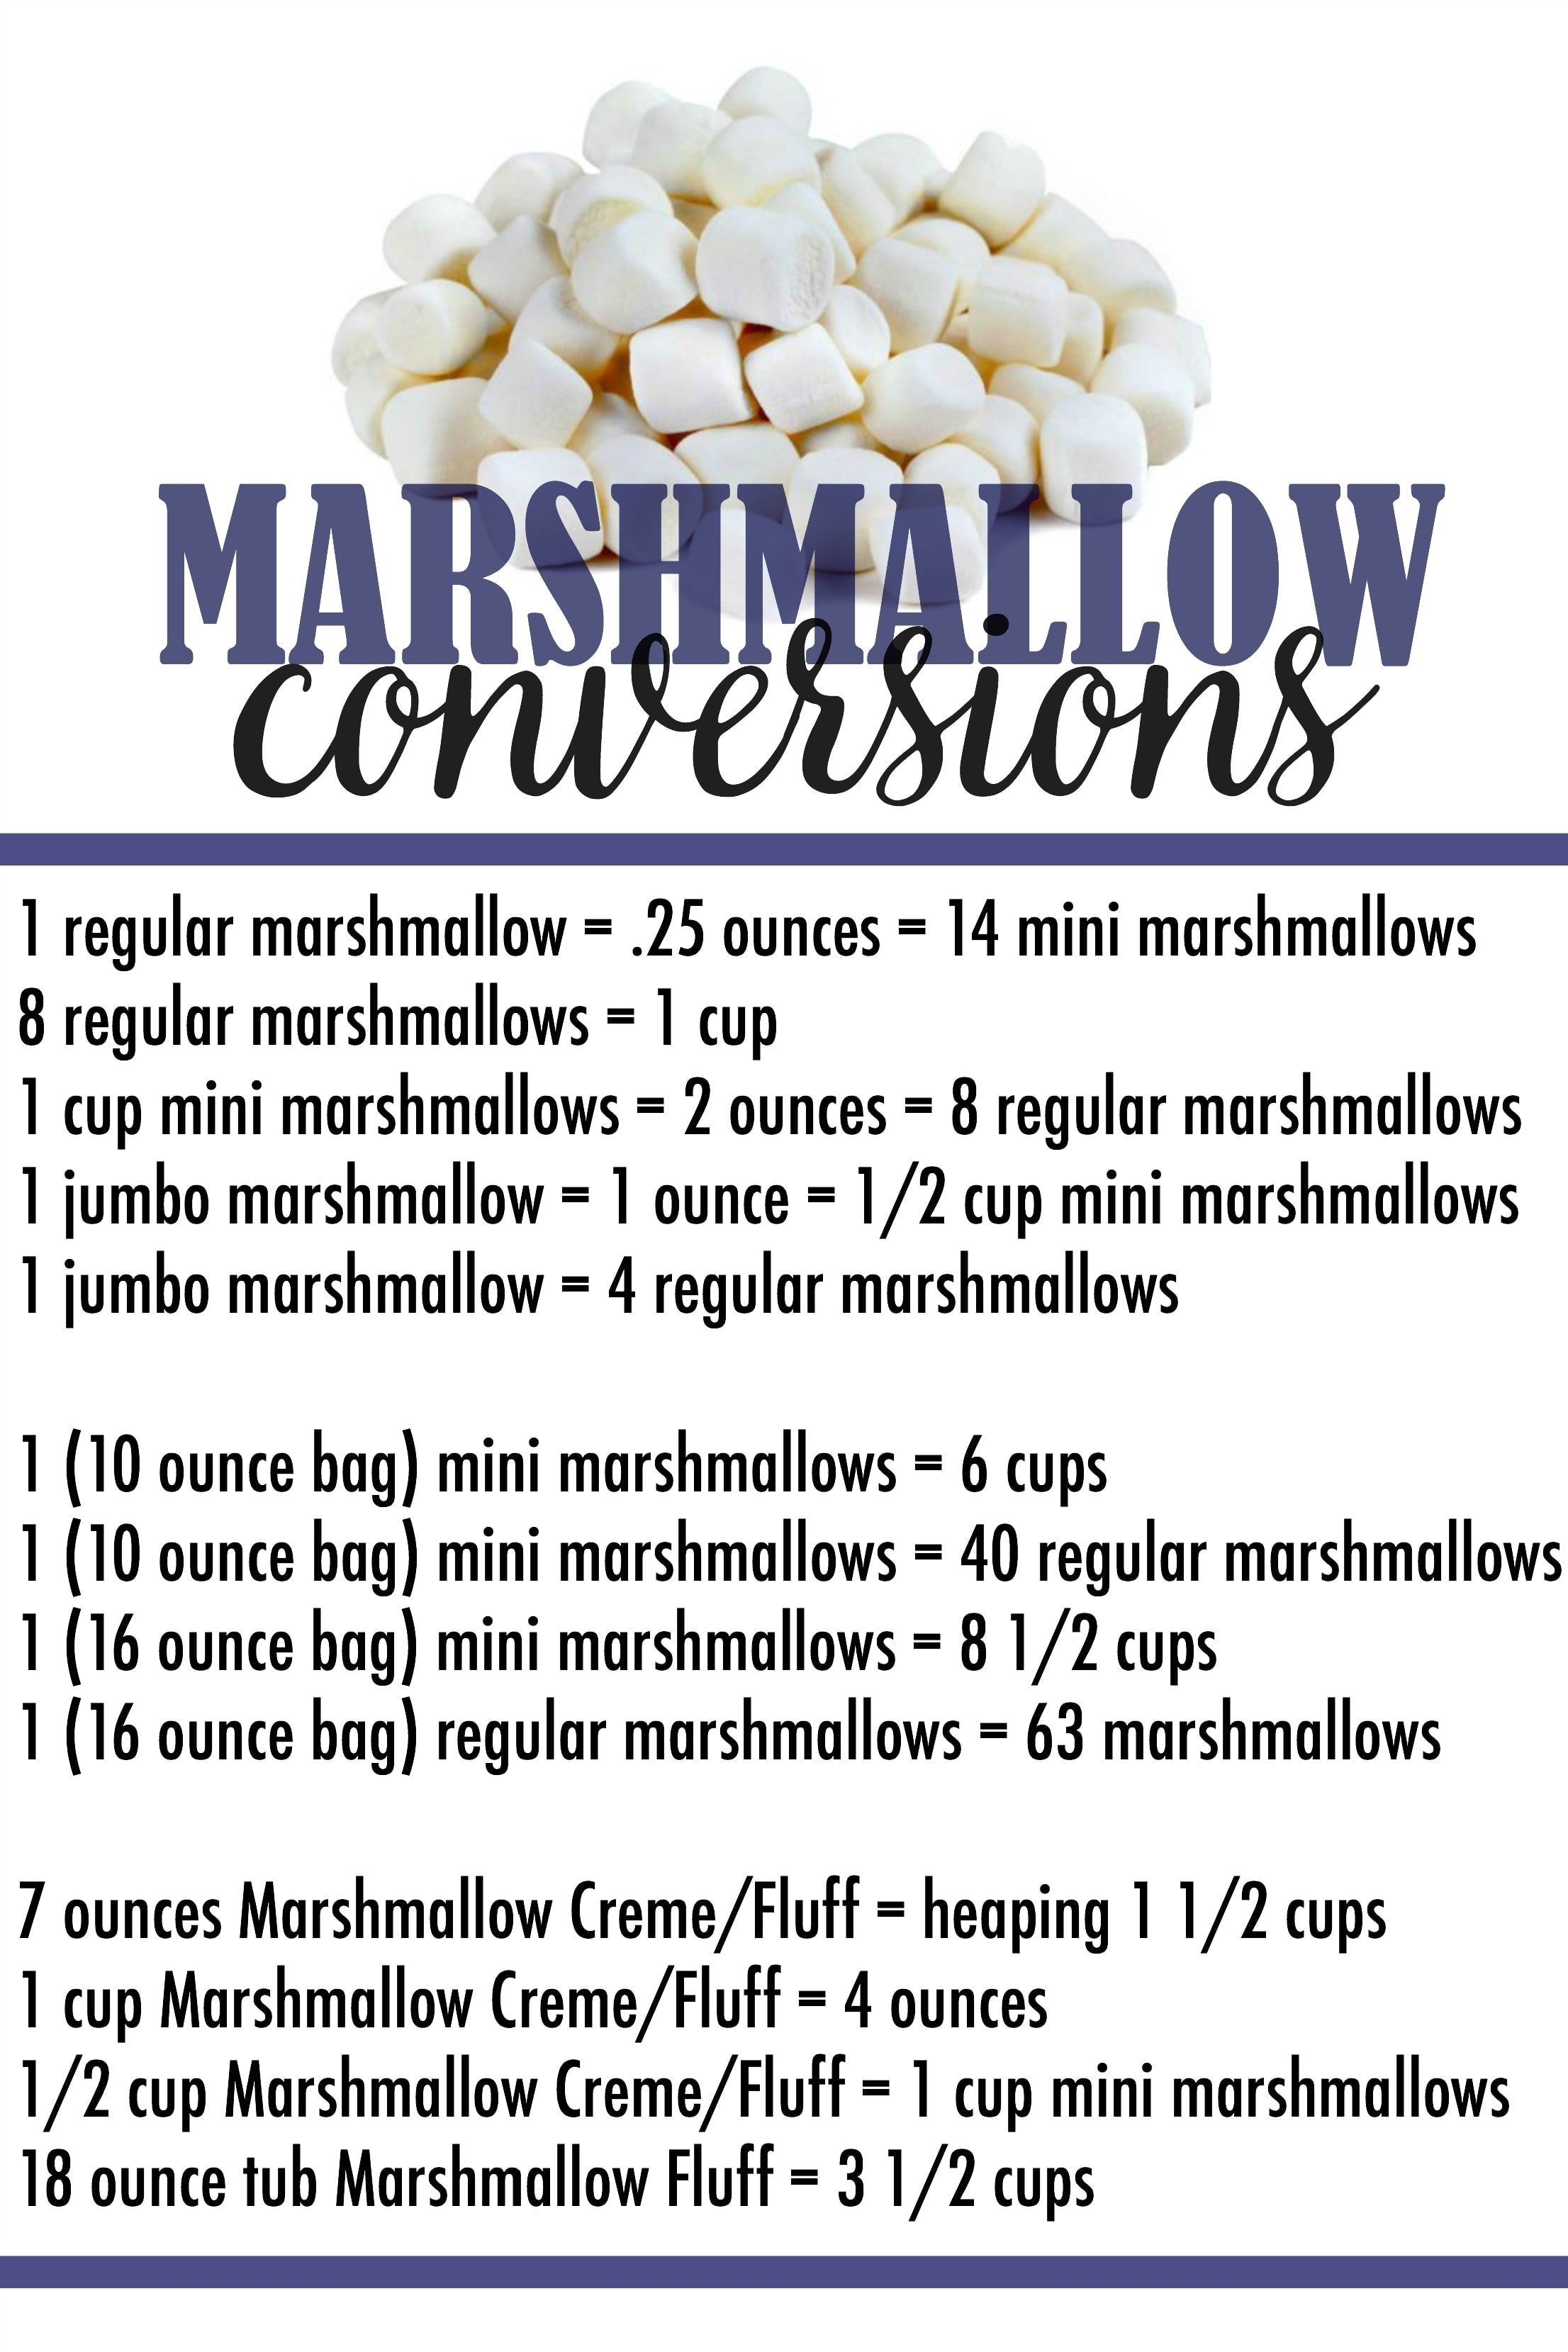 Marshmallow conversions cookies and cups marshmallow conversion chart all my marshmallow questions answered nvjuhfo Images